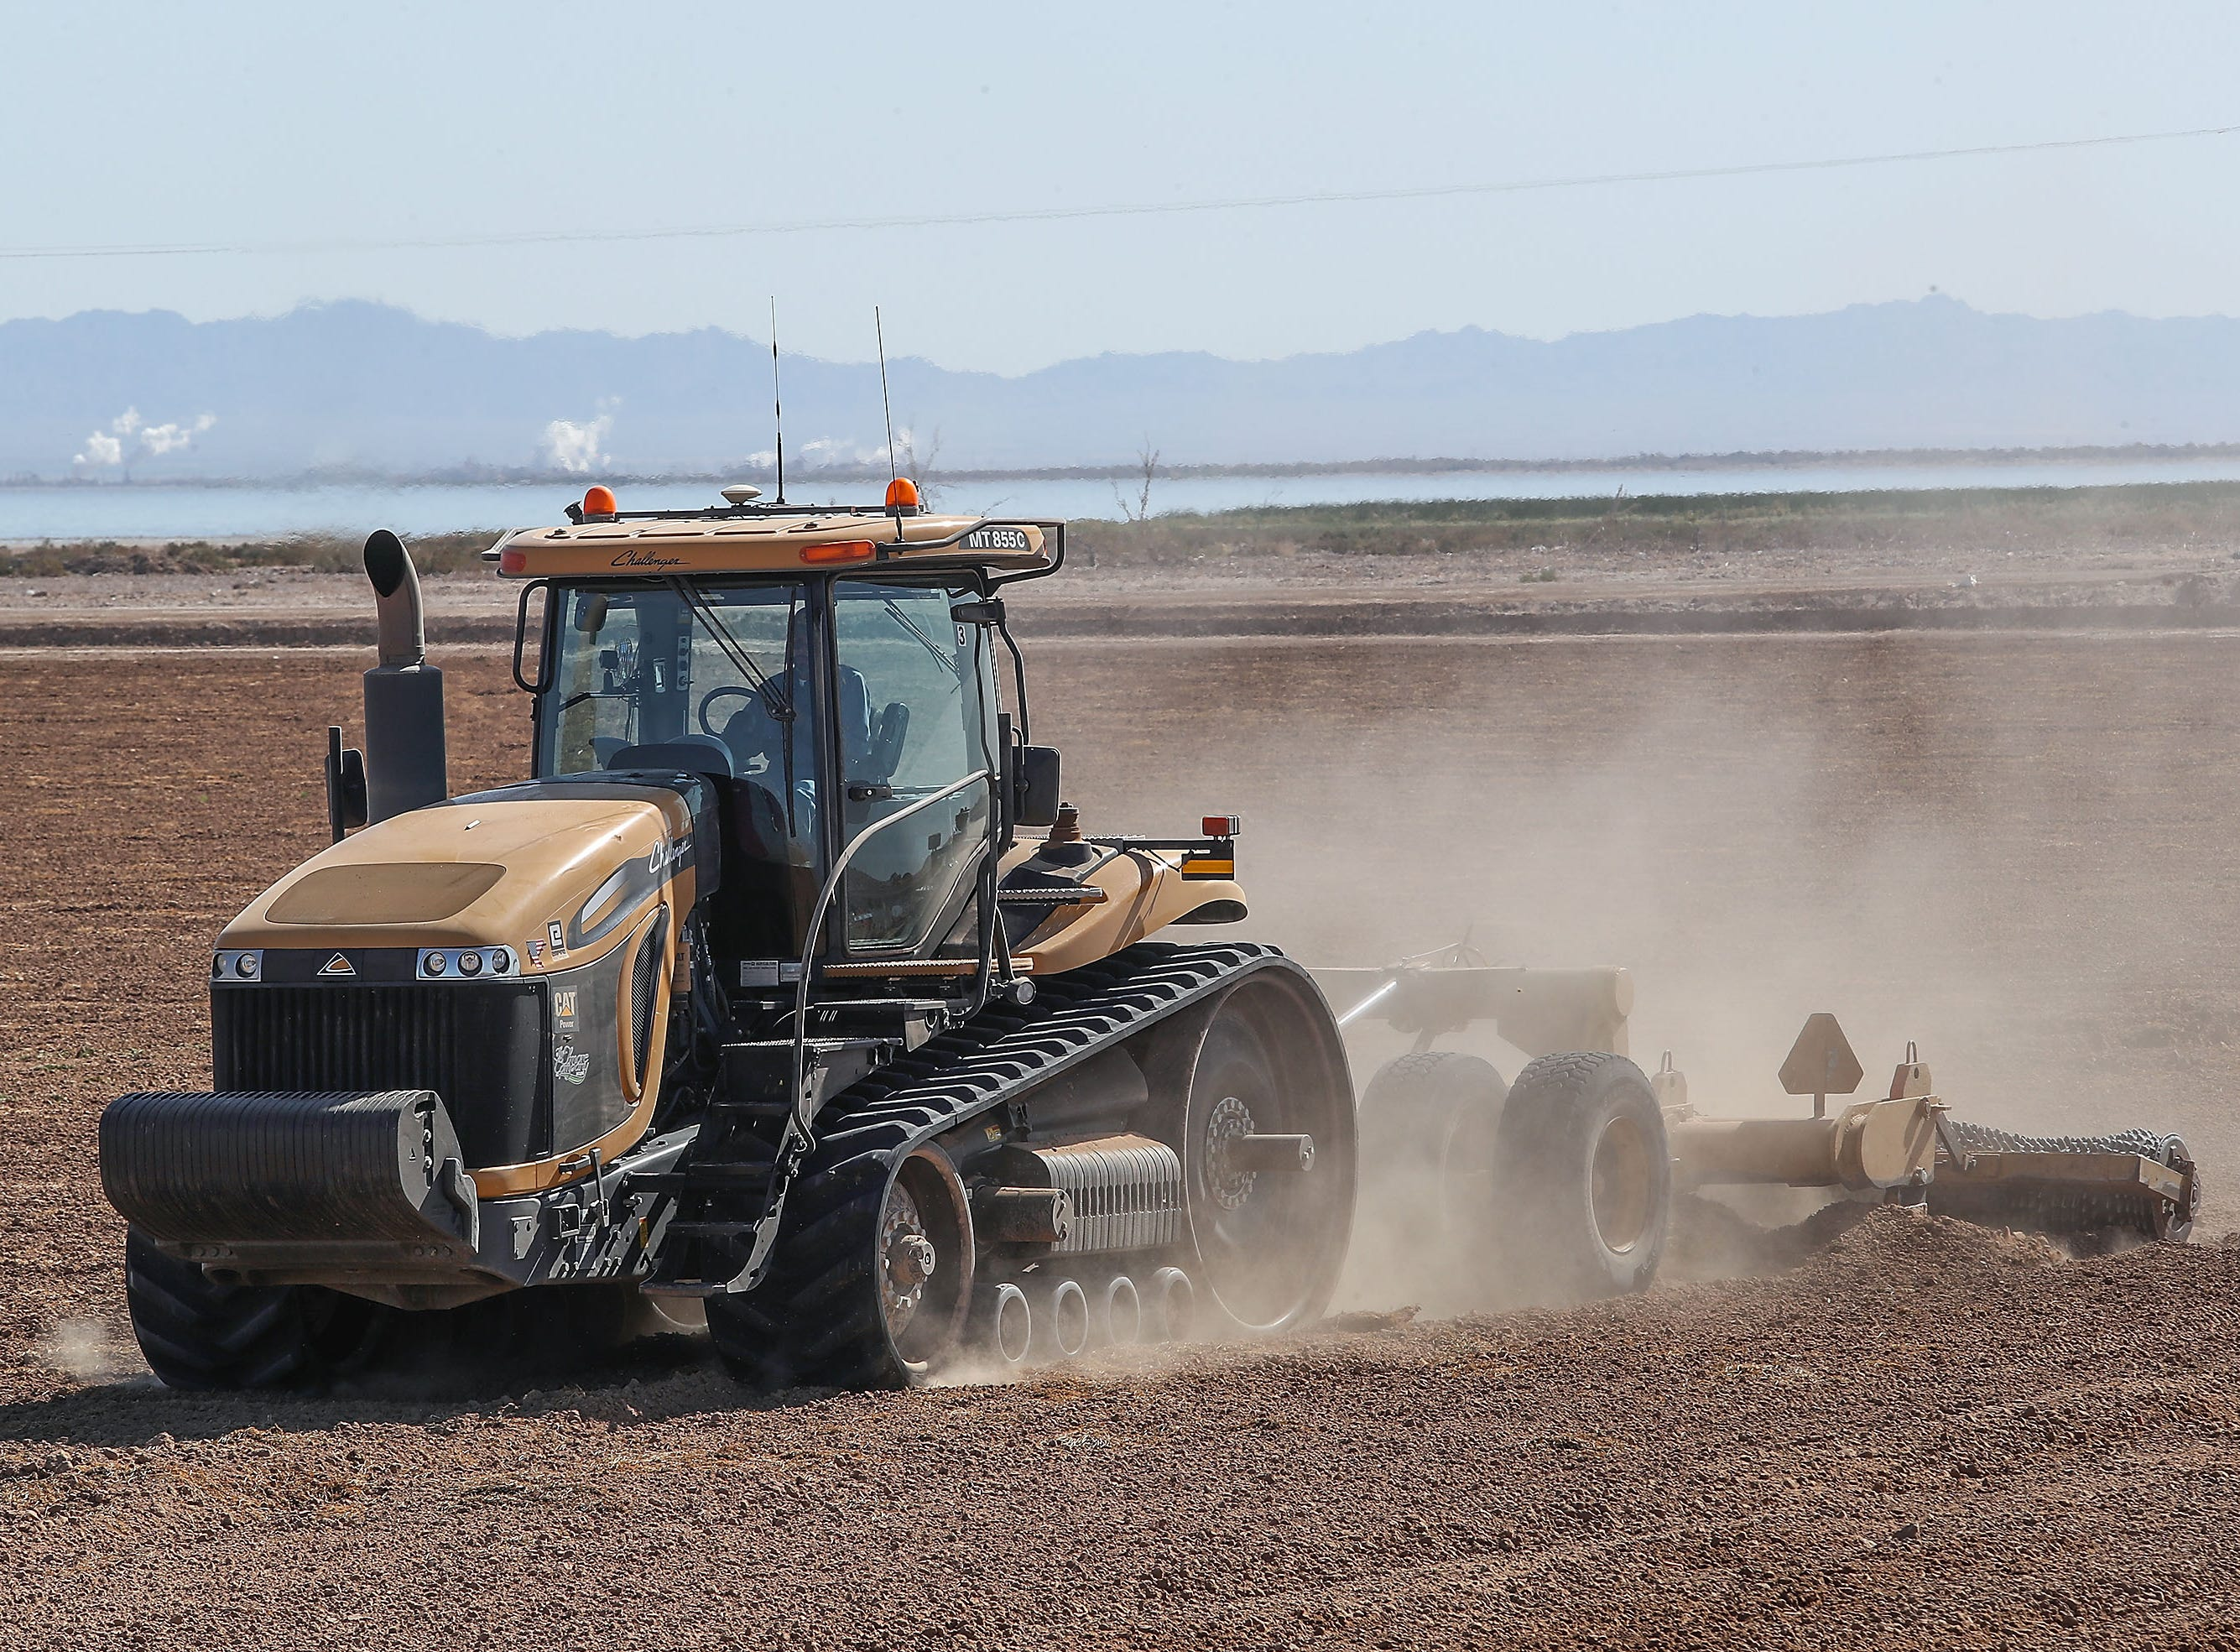 A tractor is used to farm land on the Elmore Desert Ranch which sits on the edge of the Salton Sea near Brawley, April 11, 2019.